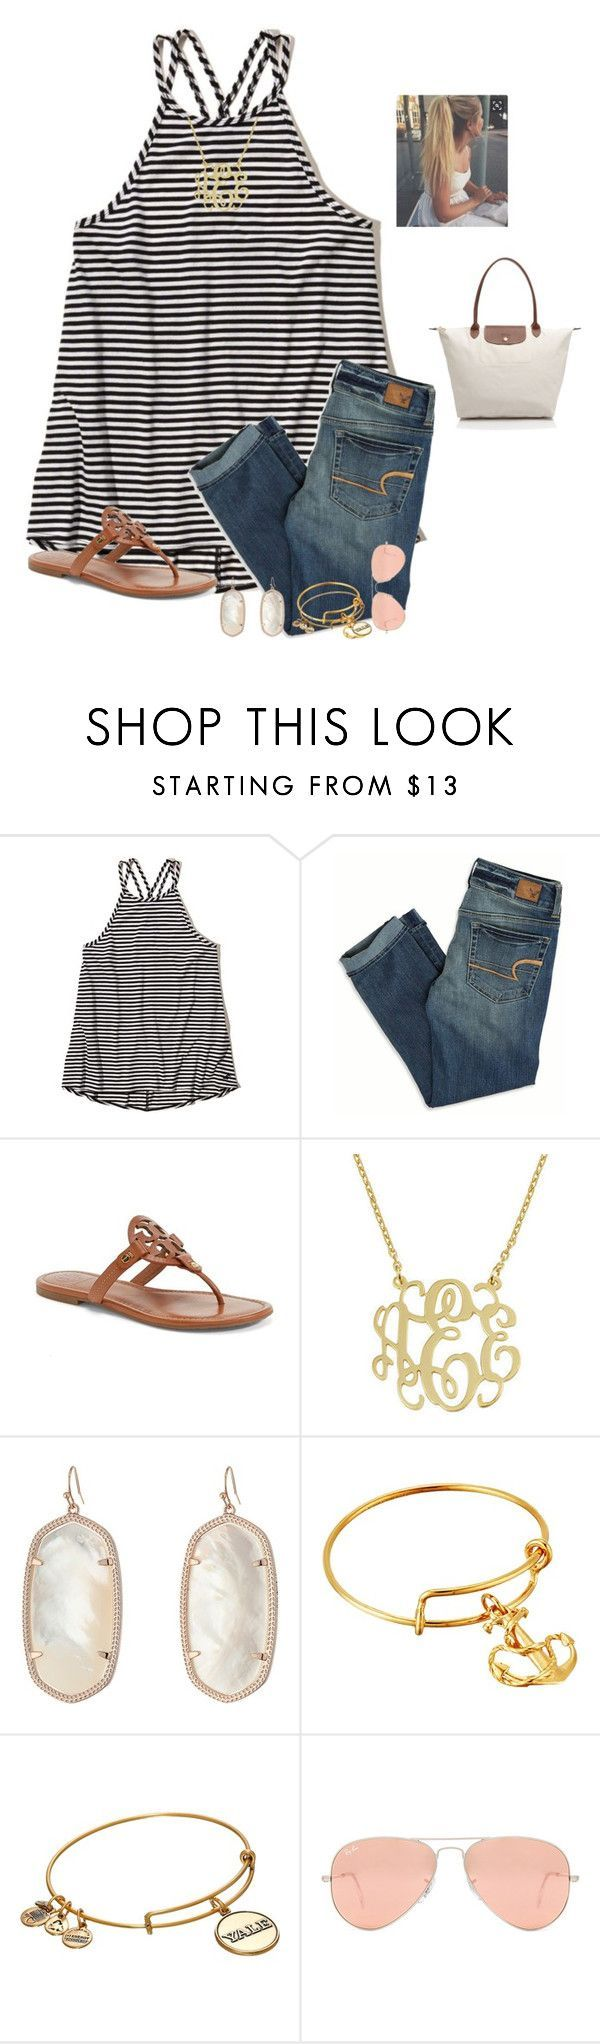 """QOTD